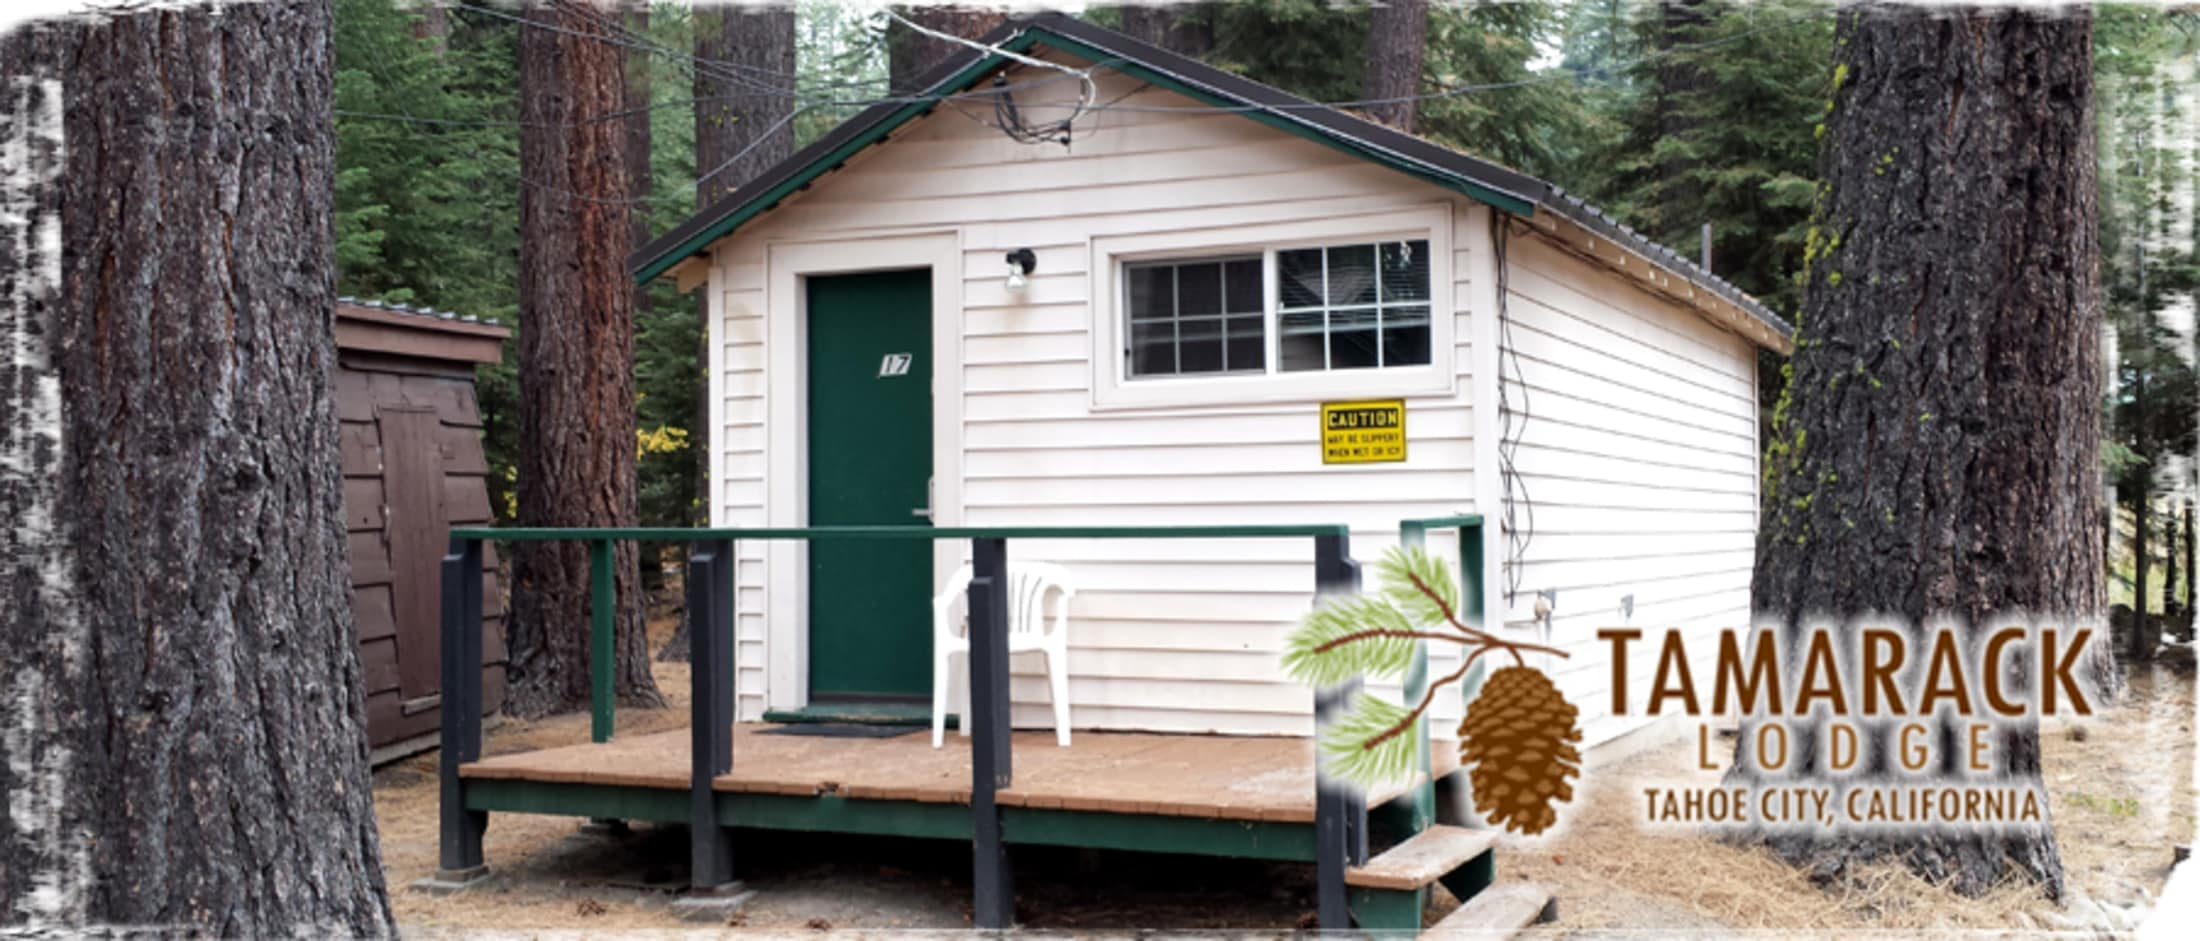 heidi have designs very you to lake not cabins our lovely simple sleep too at blog artisticalchemyblog i promise relaxation dsc will rest com comfortable bed wordpress a out but and check cabin by tahoe in